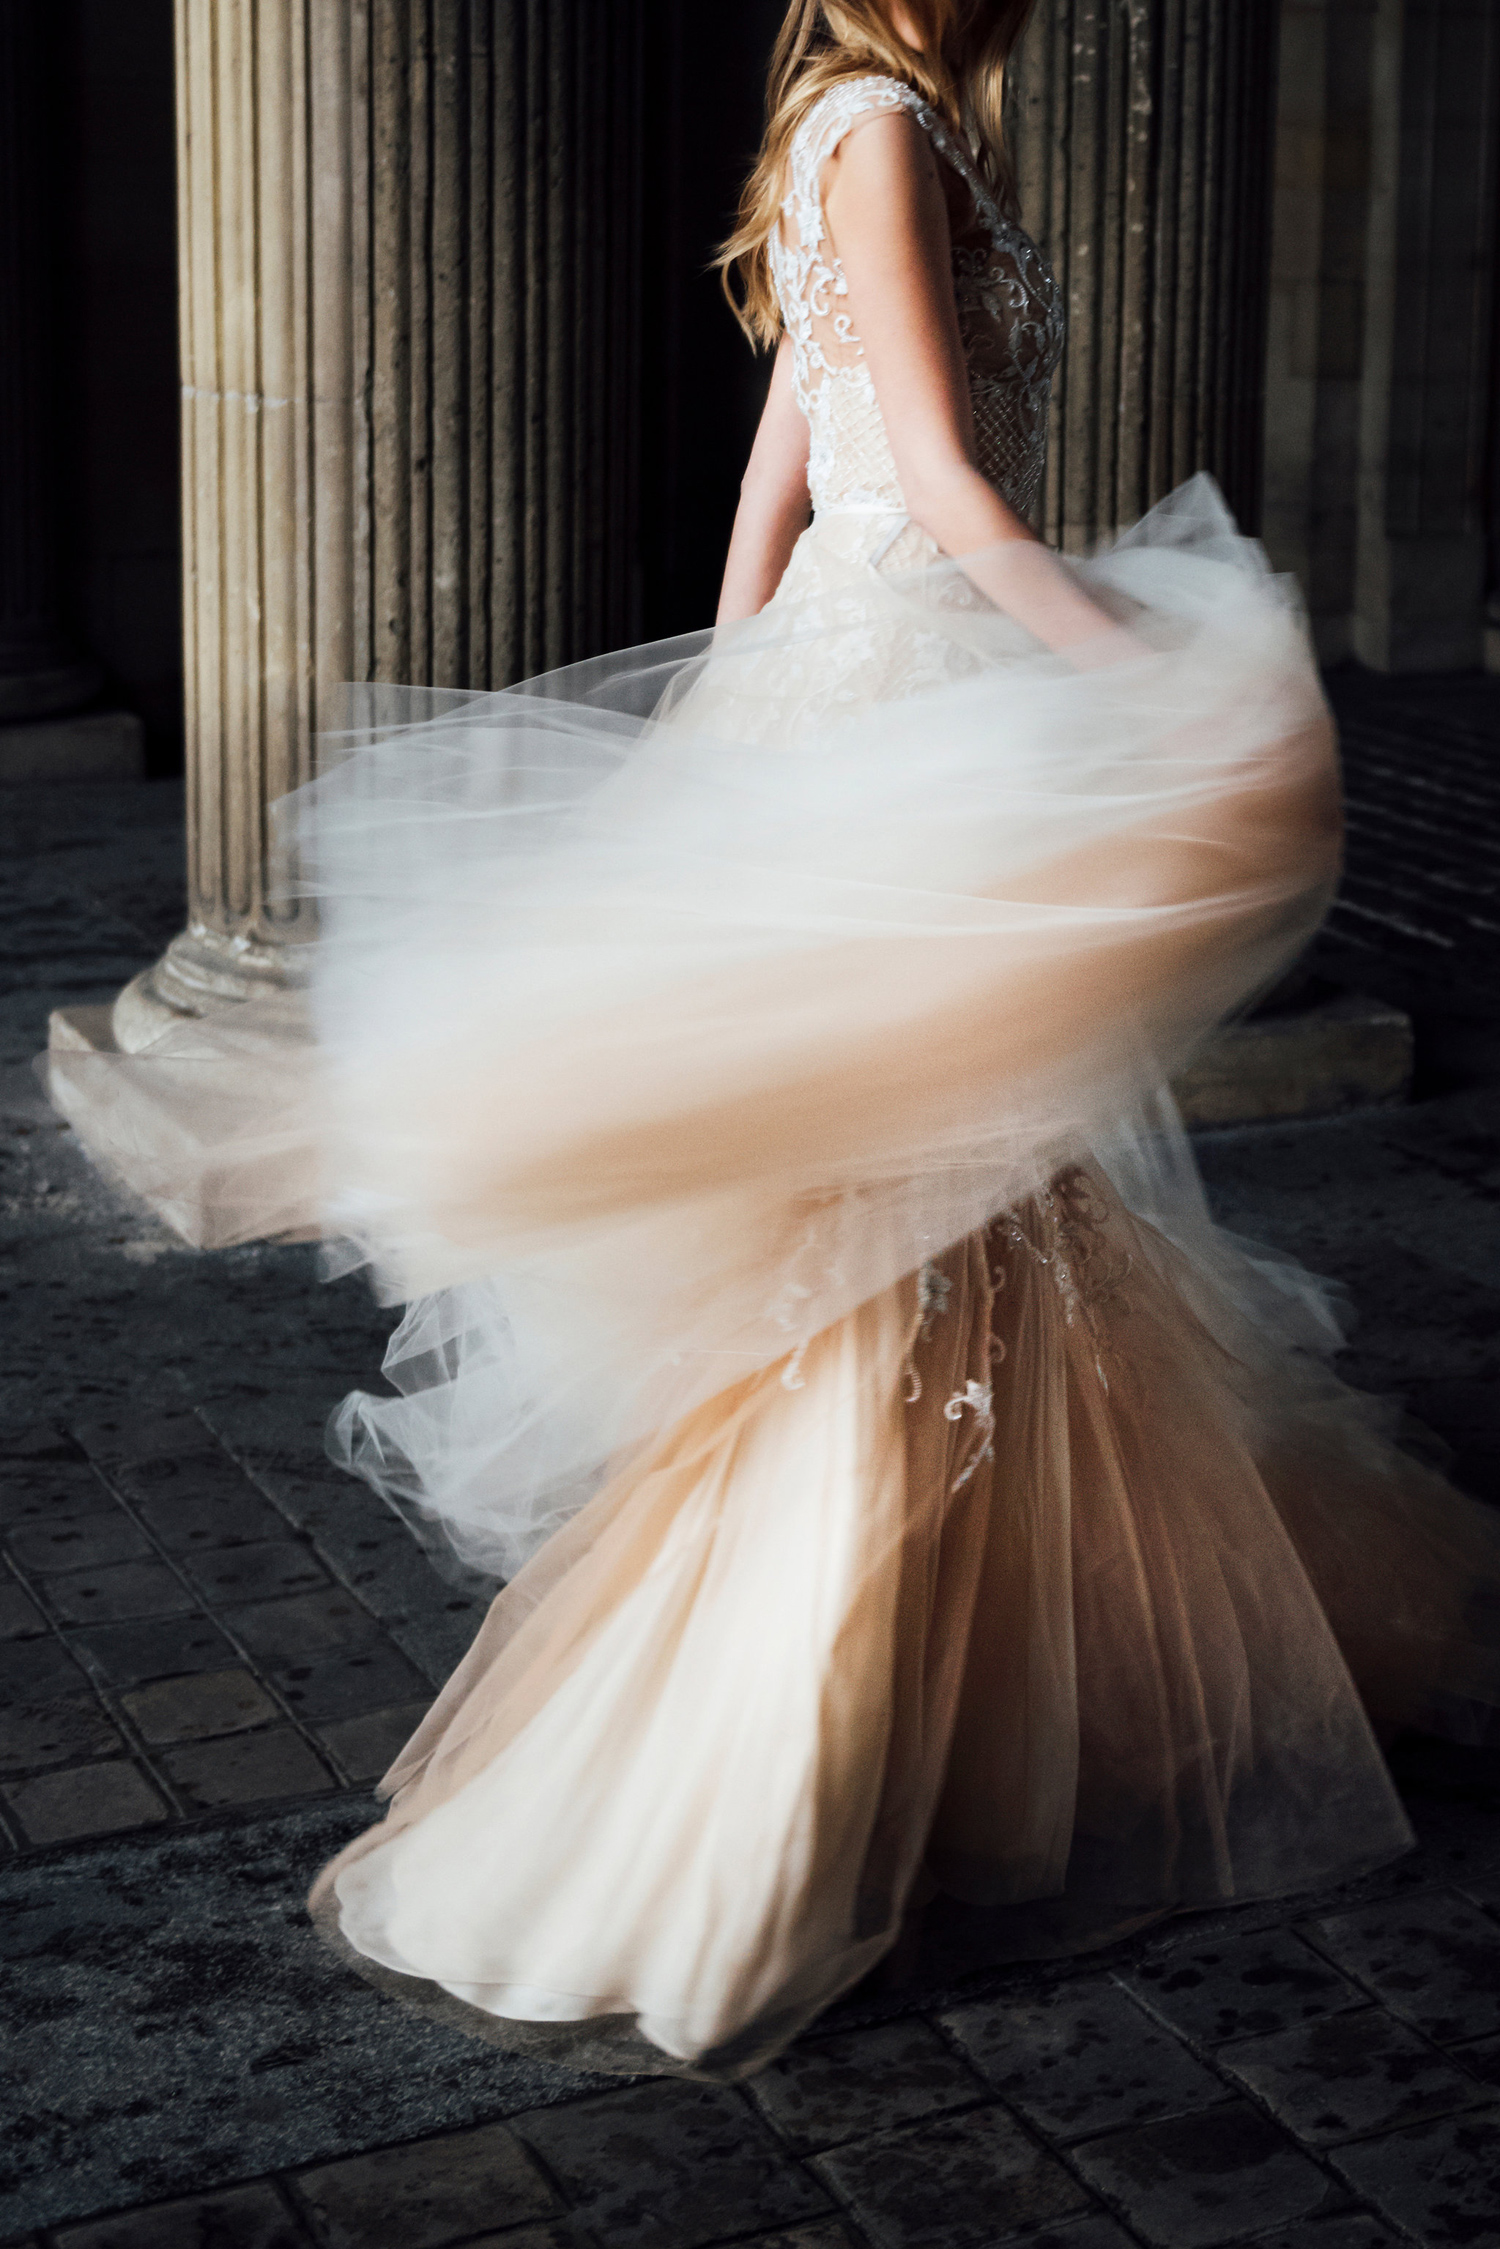 katie mitchell monique lhuillier bridal paris france wedding photographer_11.jpg